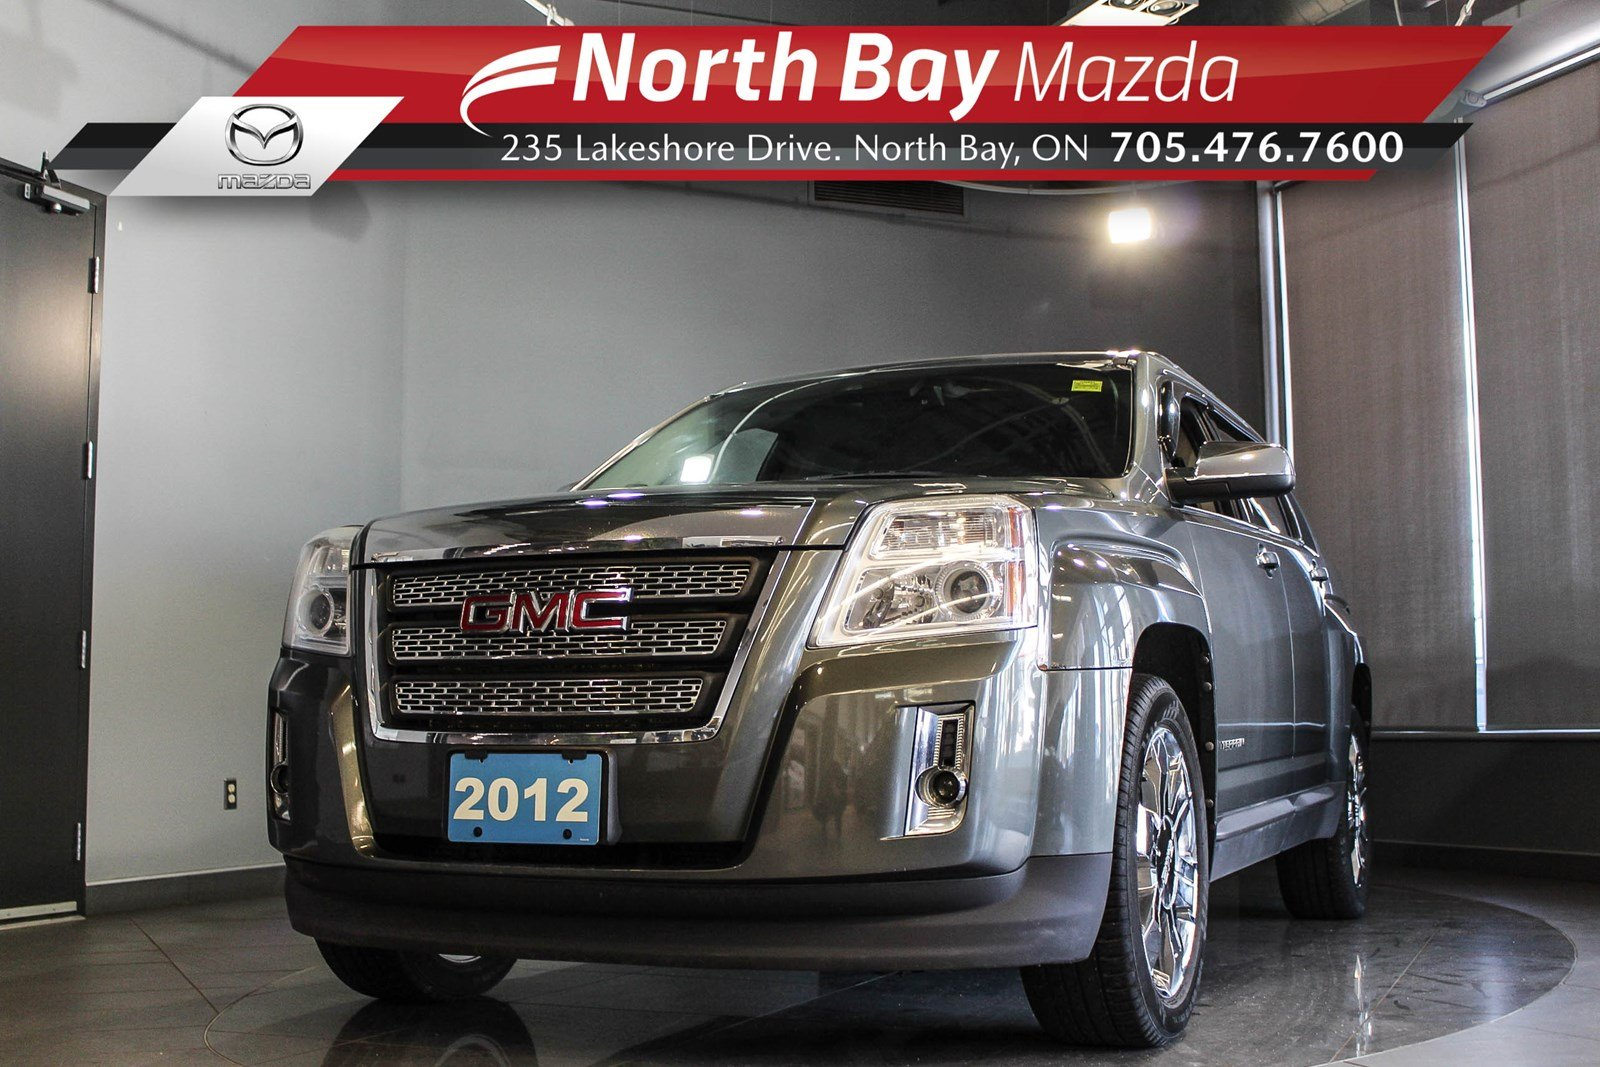 Pre-Owned 2012 GMC Terrain SLT-2 AWD with Leather, Sunroof, Heated Seats